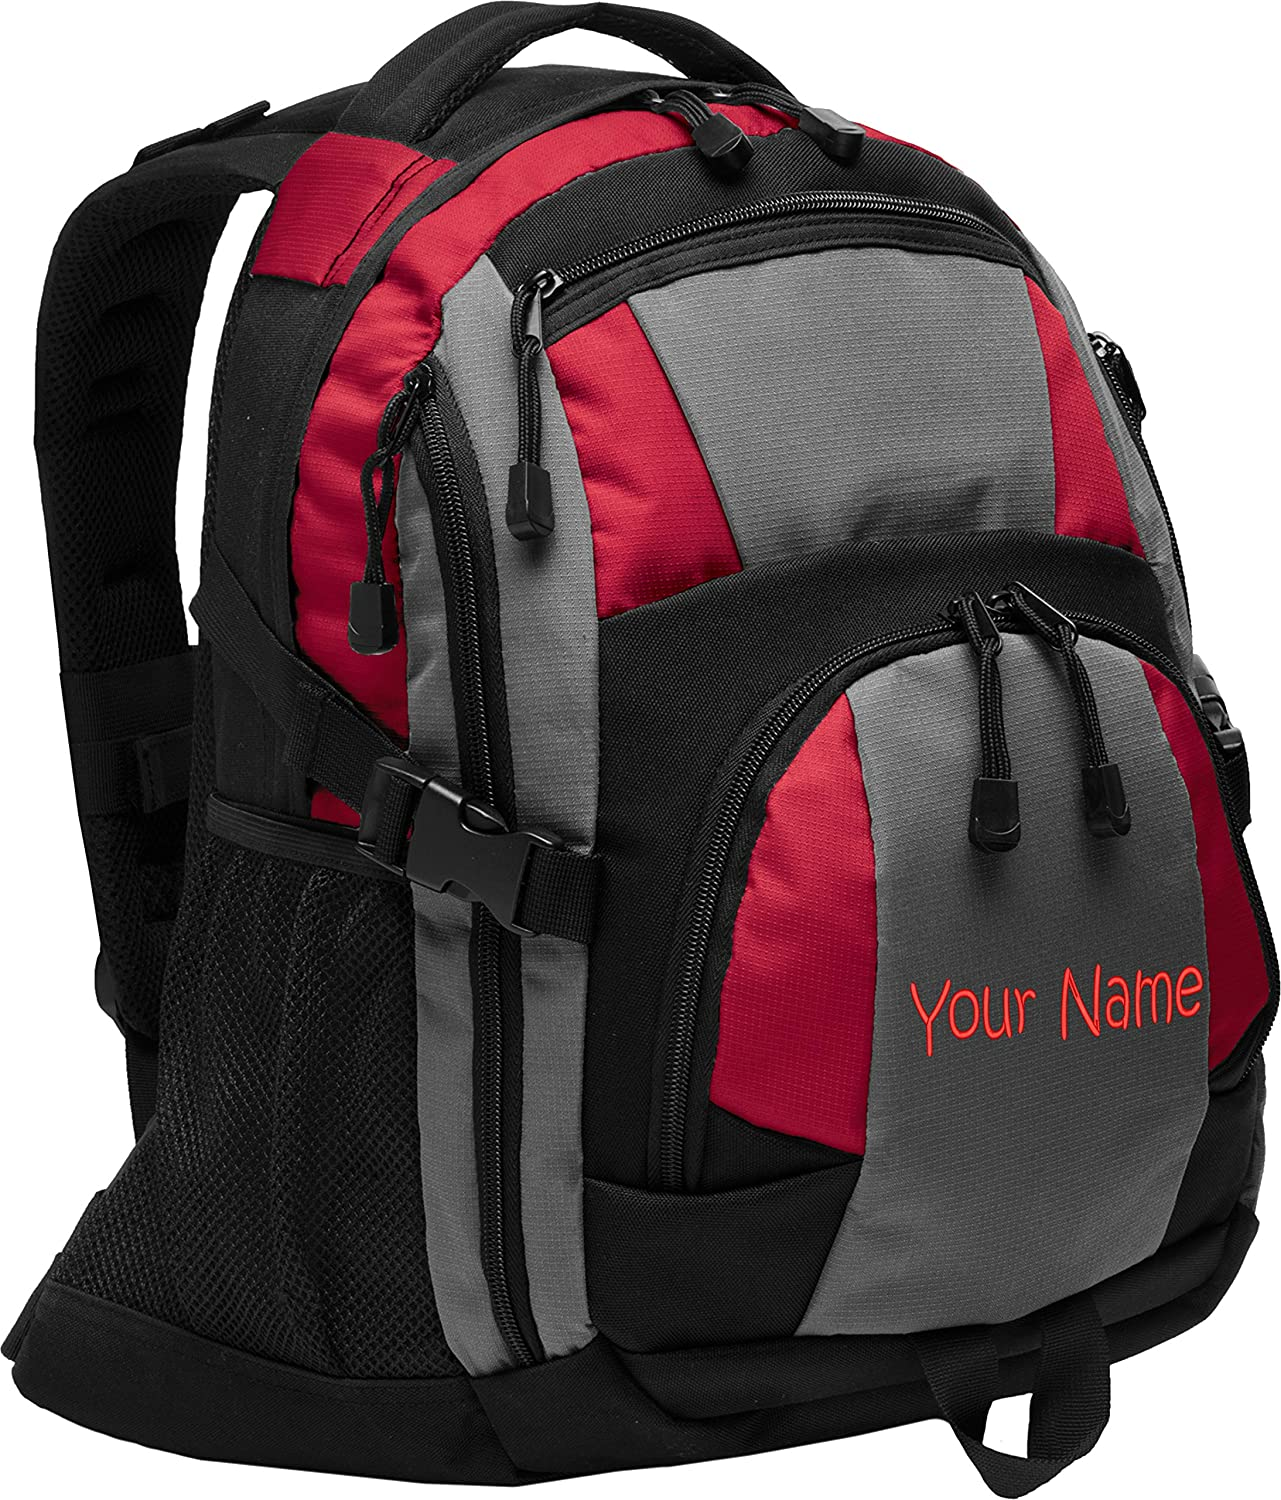 Personalized Black//Magnet Grey//Black Urban Backpack with Embroidered Name